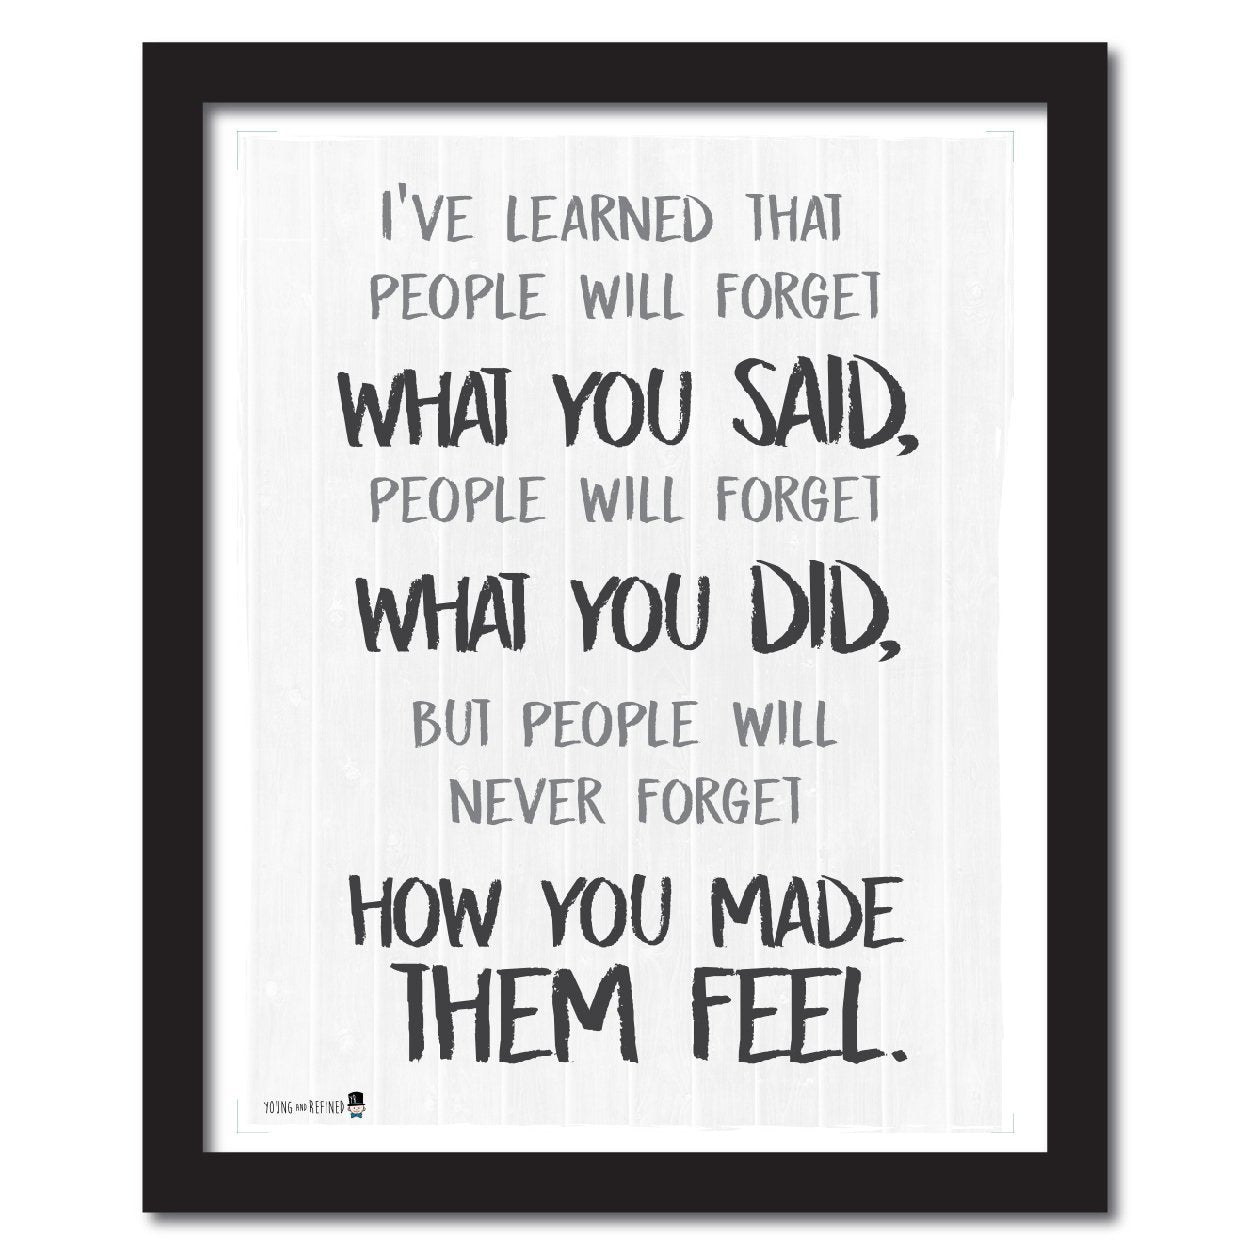 Wise saying by Maya Angelou never forget how you made them feel BLACK AND WHITE wall art perfect for decorating kitchens homes bathrooms bedrooms hallways. - Young N' Refined